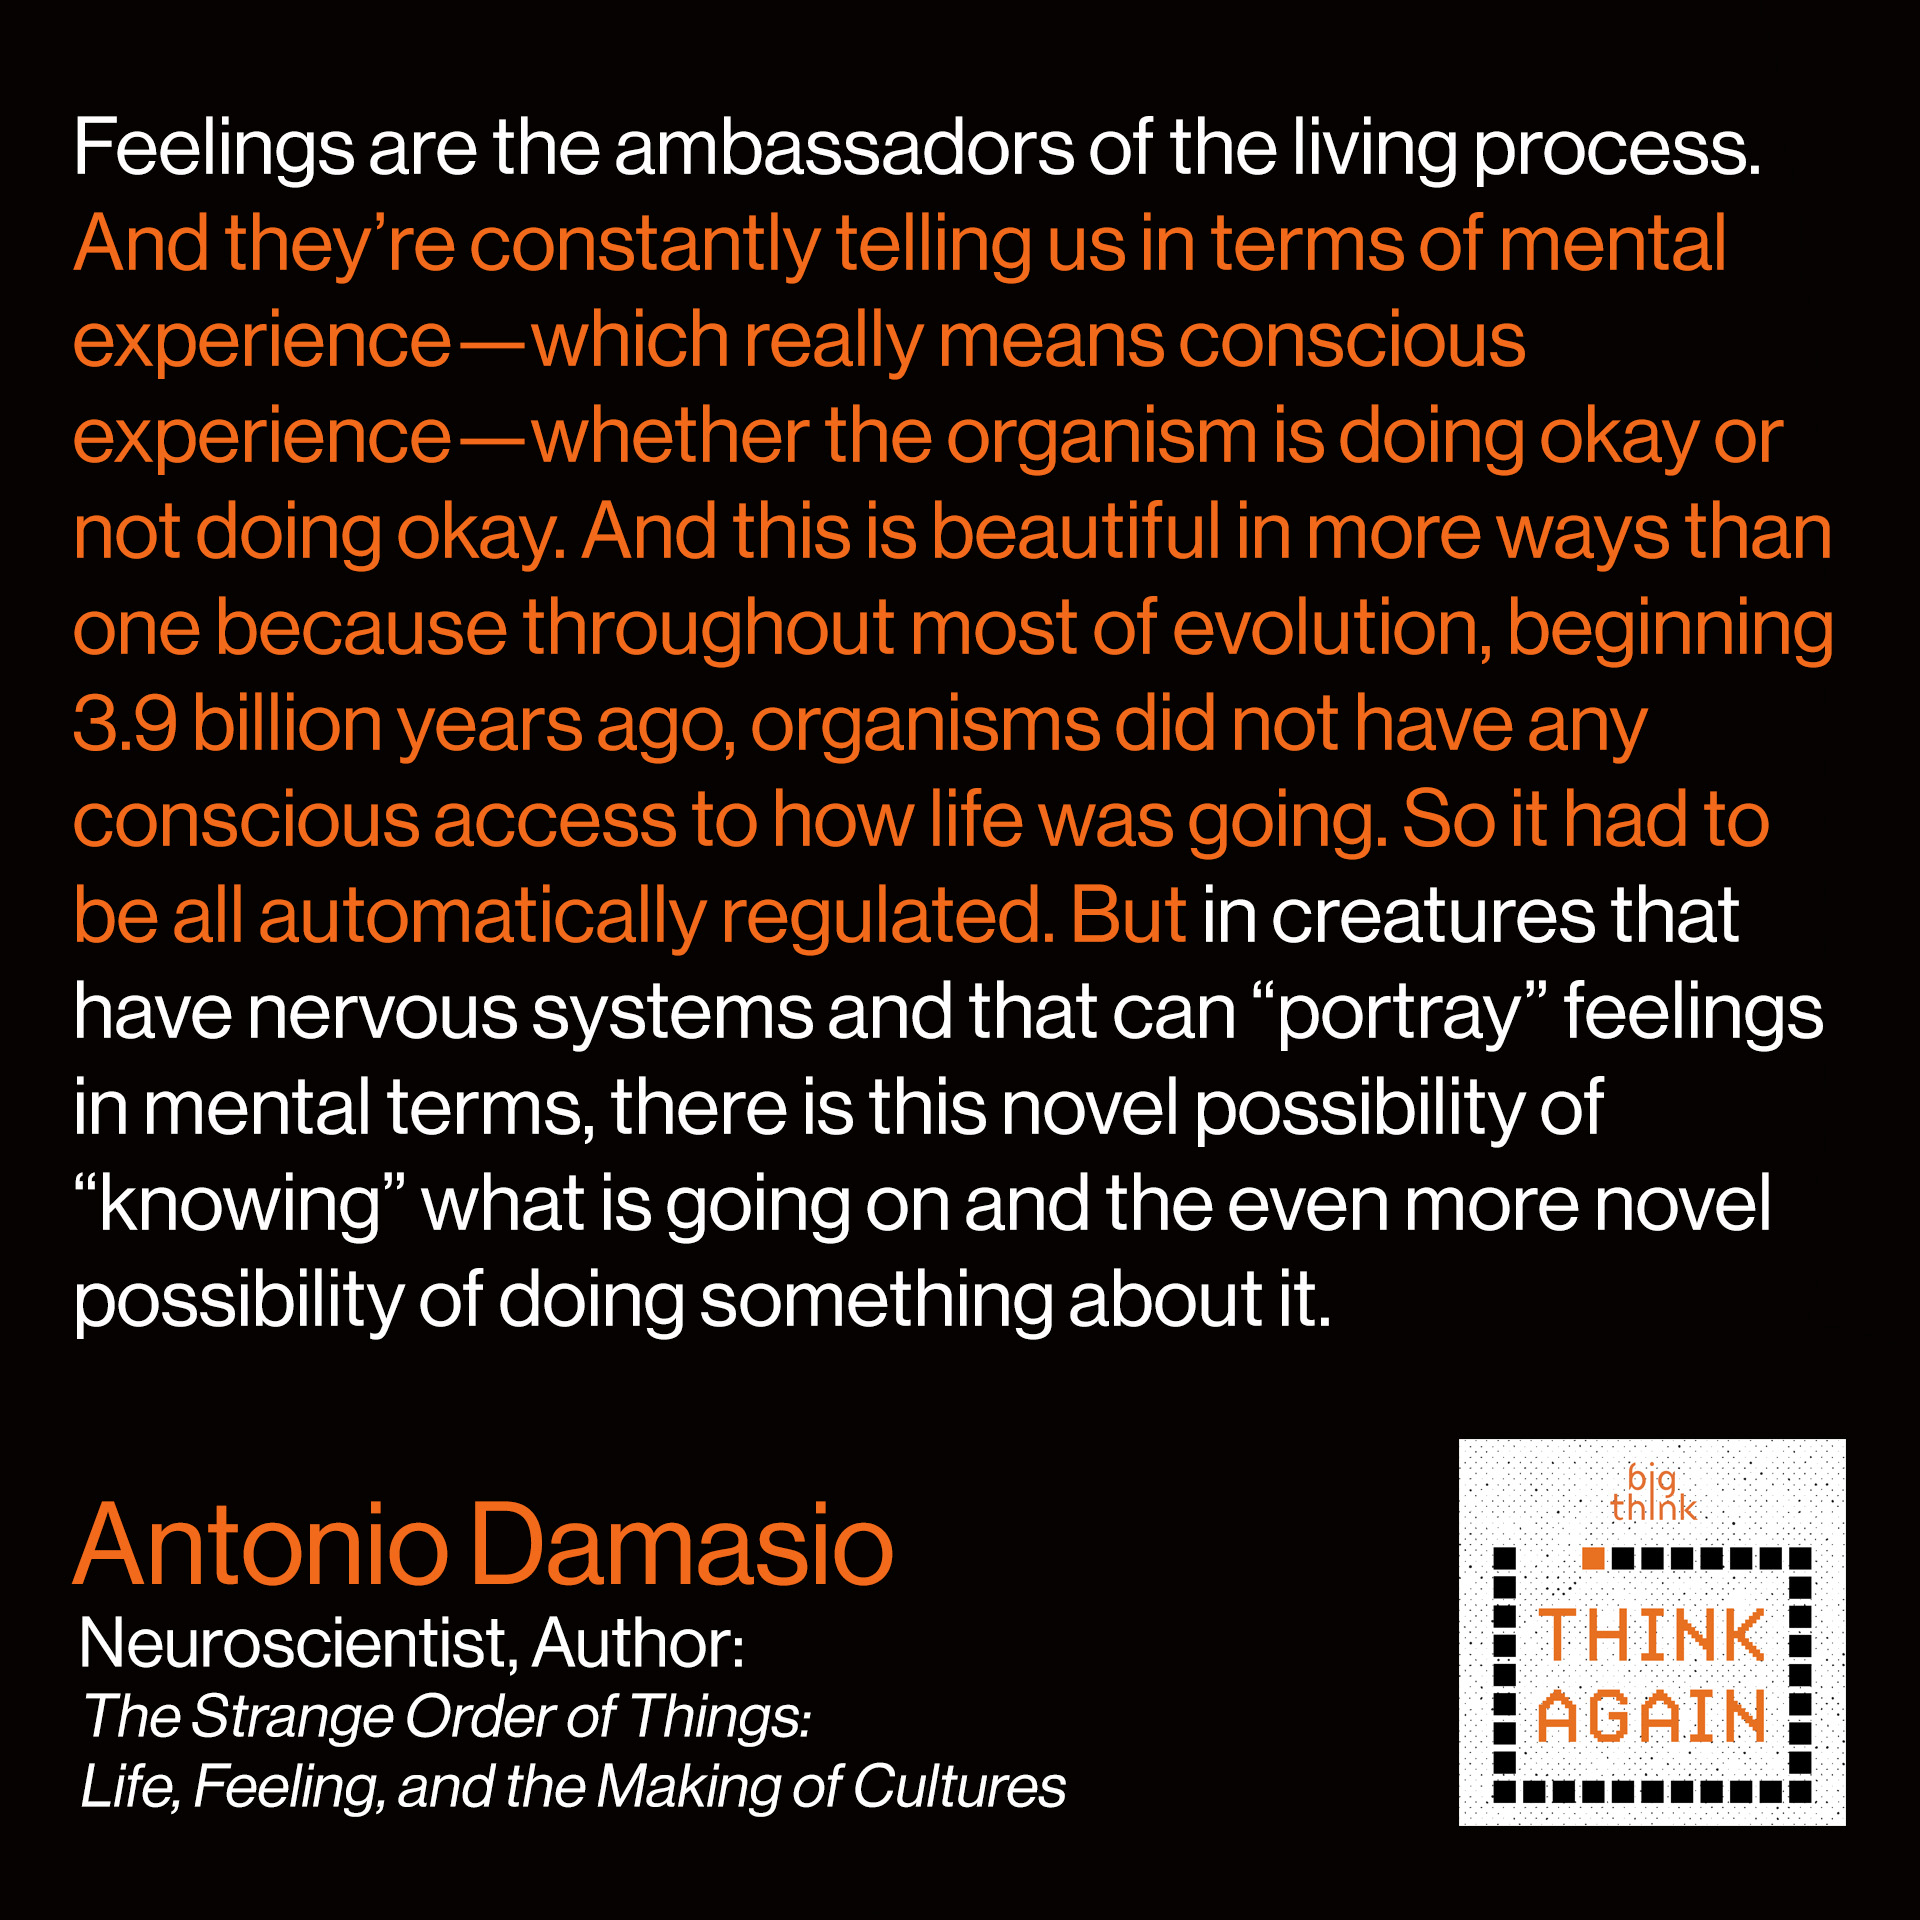 "Antonio Damasio Quote: Feelings are the ambassadors of the living process. And they're constantly telling us in terms of mental experience—which really means conscious experience—whether the organism is doing okay or not doing okay. If somebody asks us how are you and you say ""fine"", that simply means that homeostasis is doing well enough that it has not sent a bulletin to the brain and the mind telling it ""watch out, there's trouble here"". And when you are sick and you say ""I'm not well"", it's actually your organism sensing disrupted homeostasis and telling your brain that something is wrong and you'd better do something about it. And this is beautiful in more ways than one because it tells you that throughout most of evolution, beginning with 3.9 billion years ago, organisms did not have any conscious access to how life was going. So it had to be all automatically regulated. But in creatures that have nervous systems and that can ""portray"" feelings in mental terms, there is this novel possibility of ""knowing"" what is going on and the even more novel possibility of doing something about it."